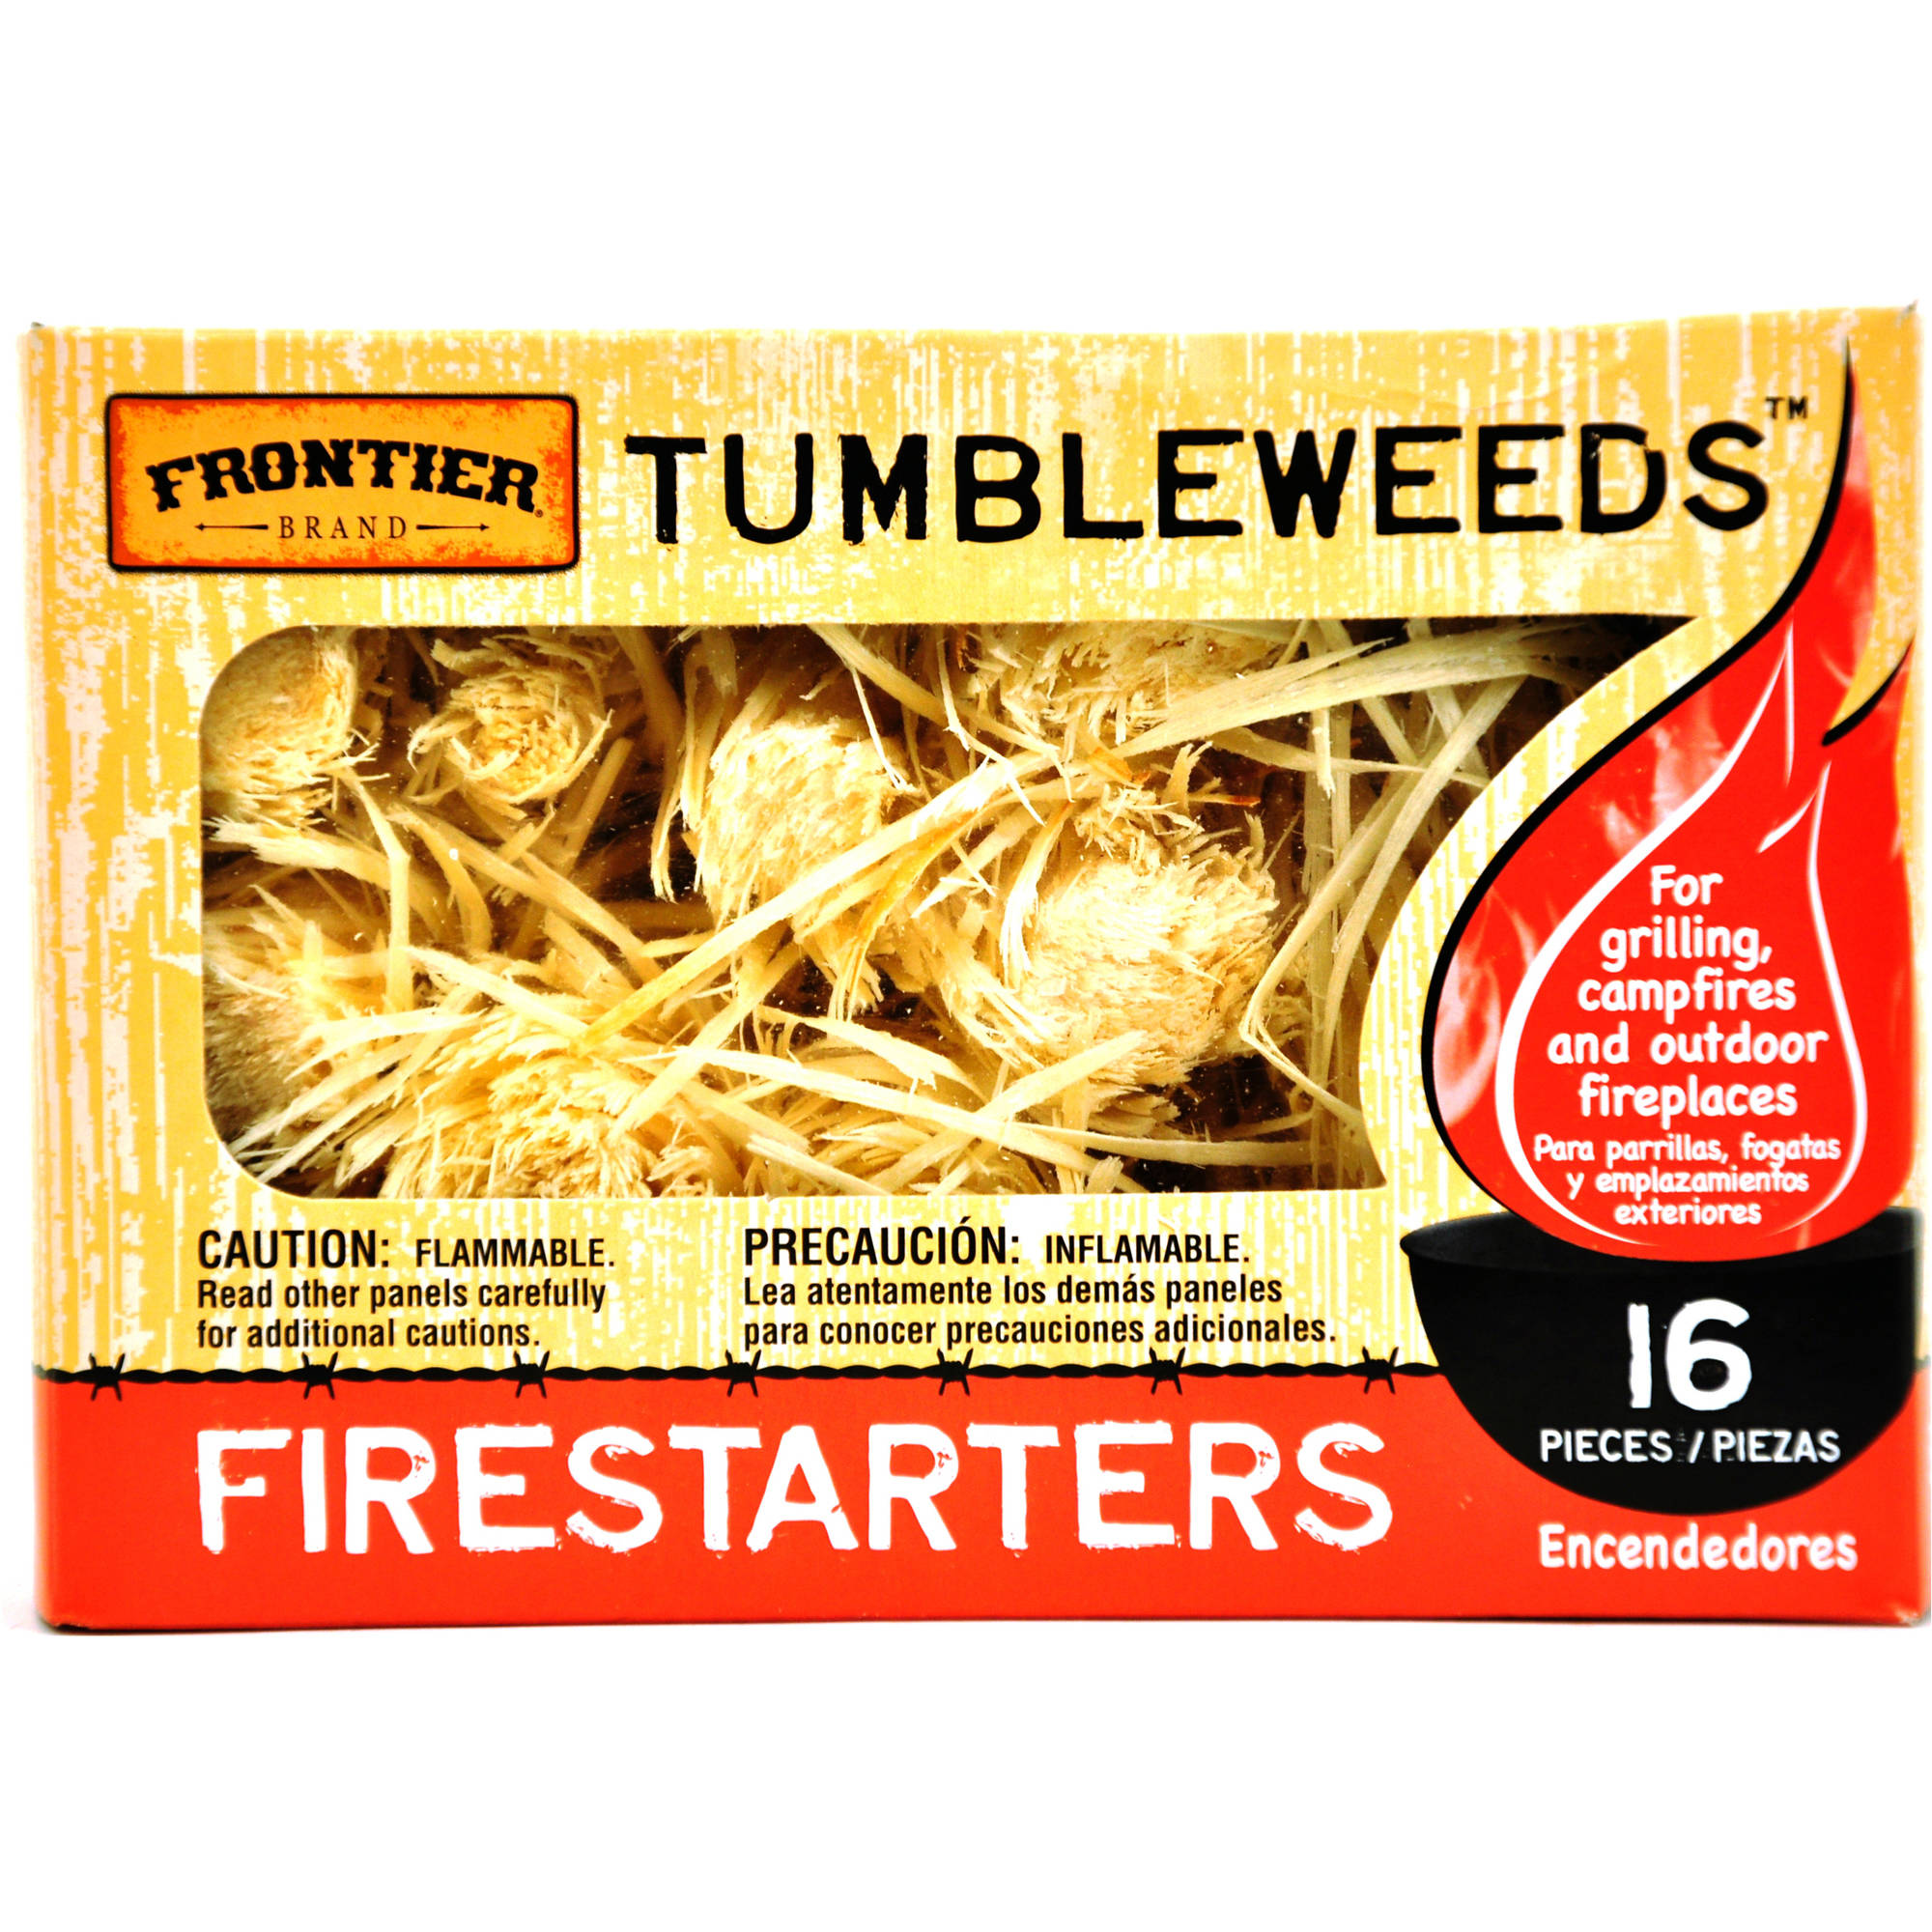 Frontier Tumbleweeds Fire Starters, 16pcs by Royal Oak